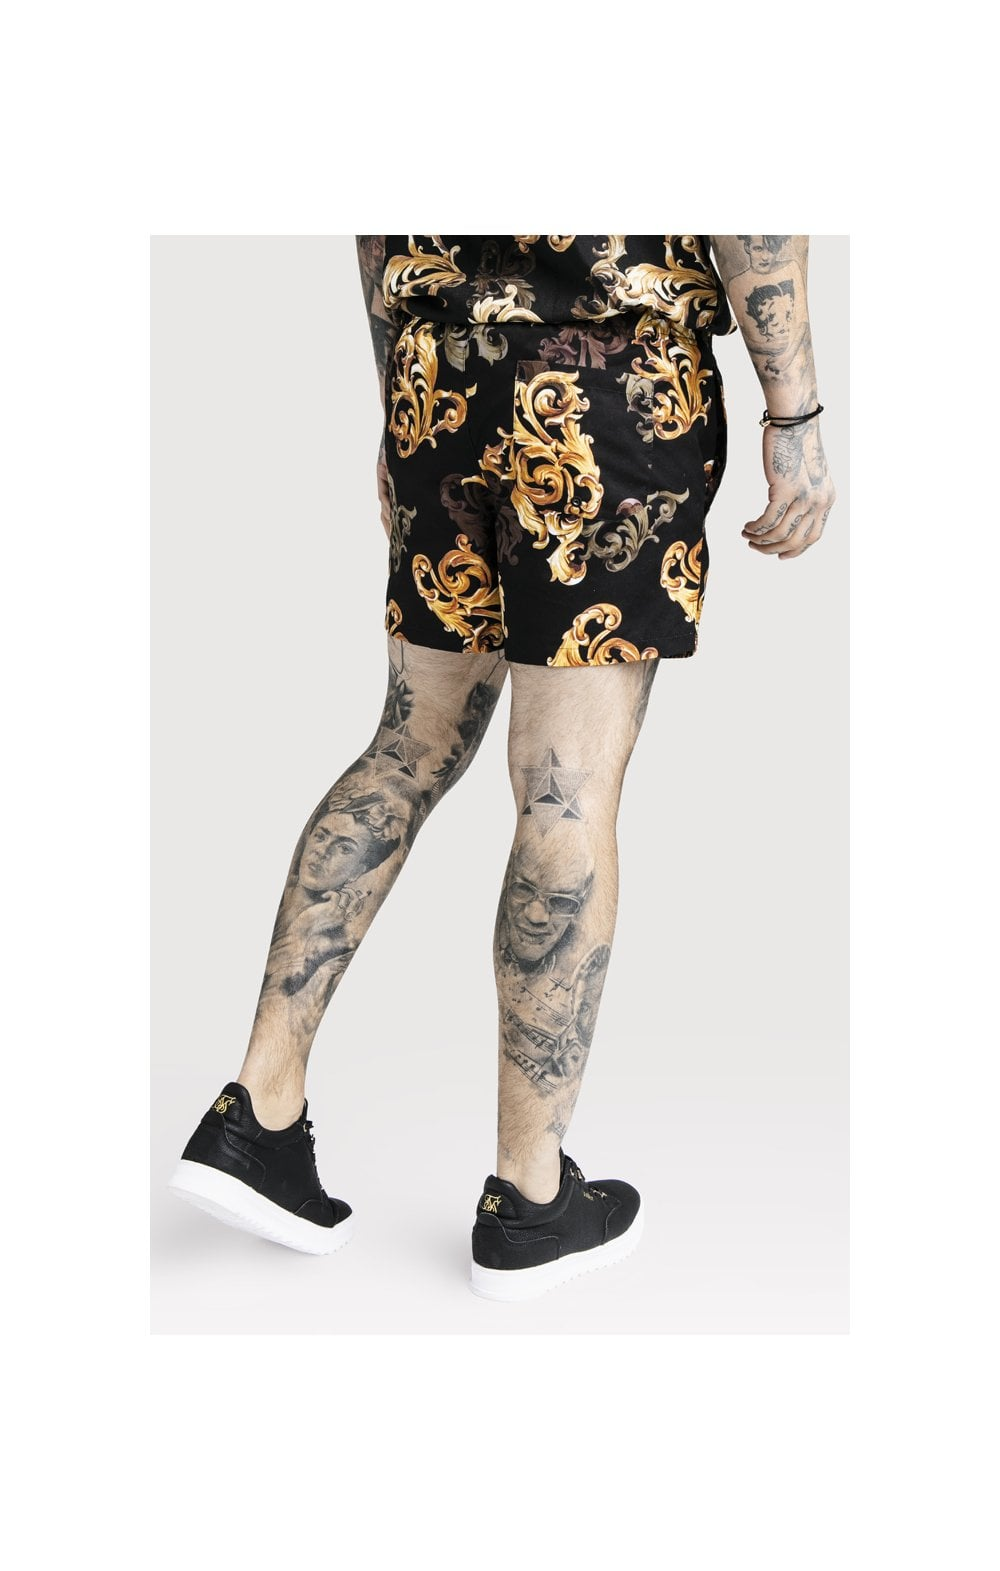 SikSilk x Dani Alves Swim Shorts - Black & Gold (2)